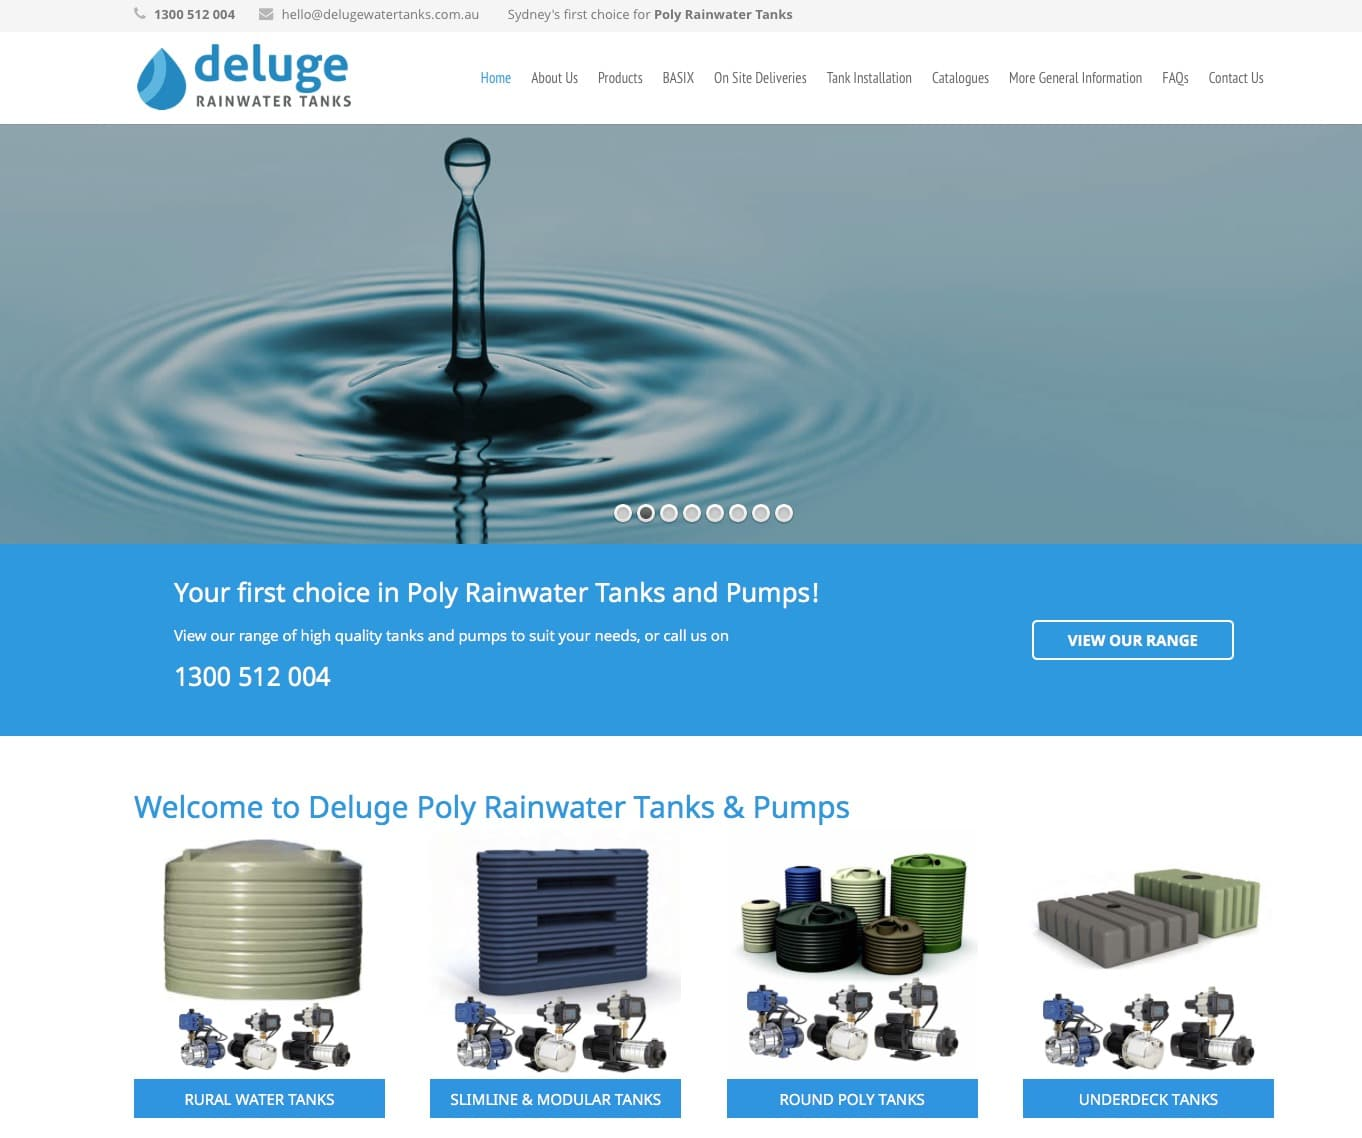 Deluge Rainwater Tanks website design